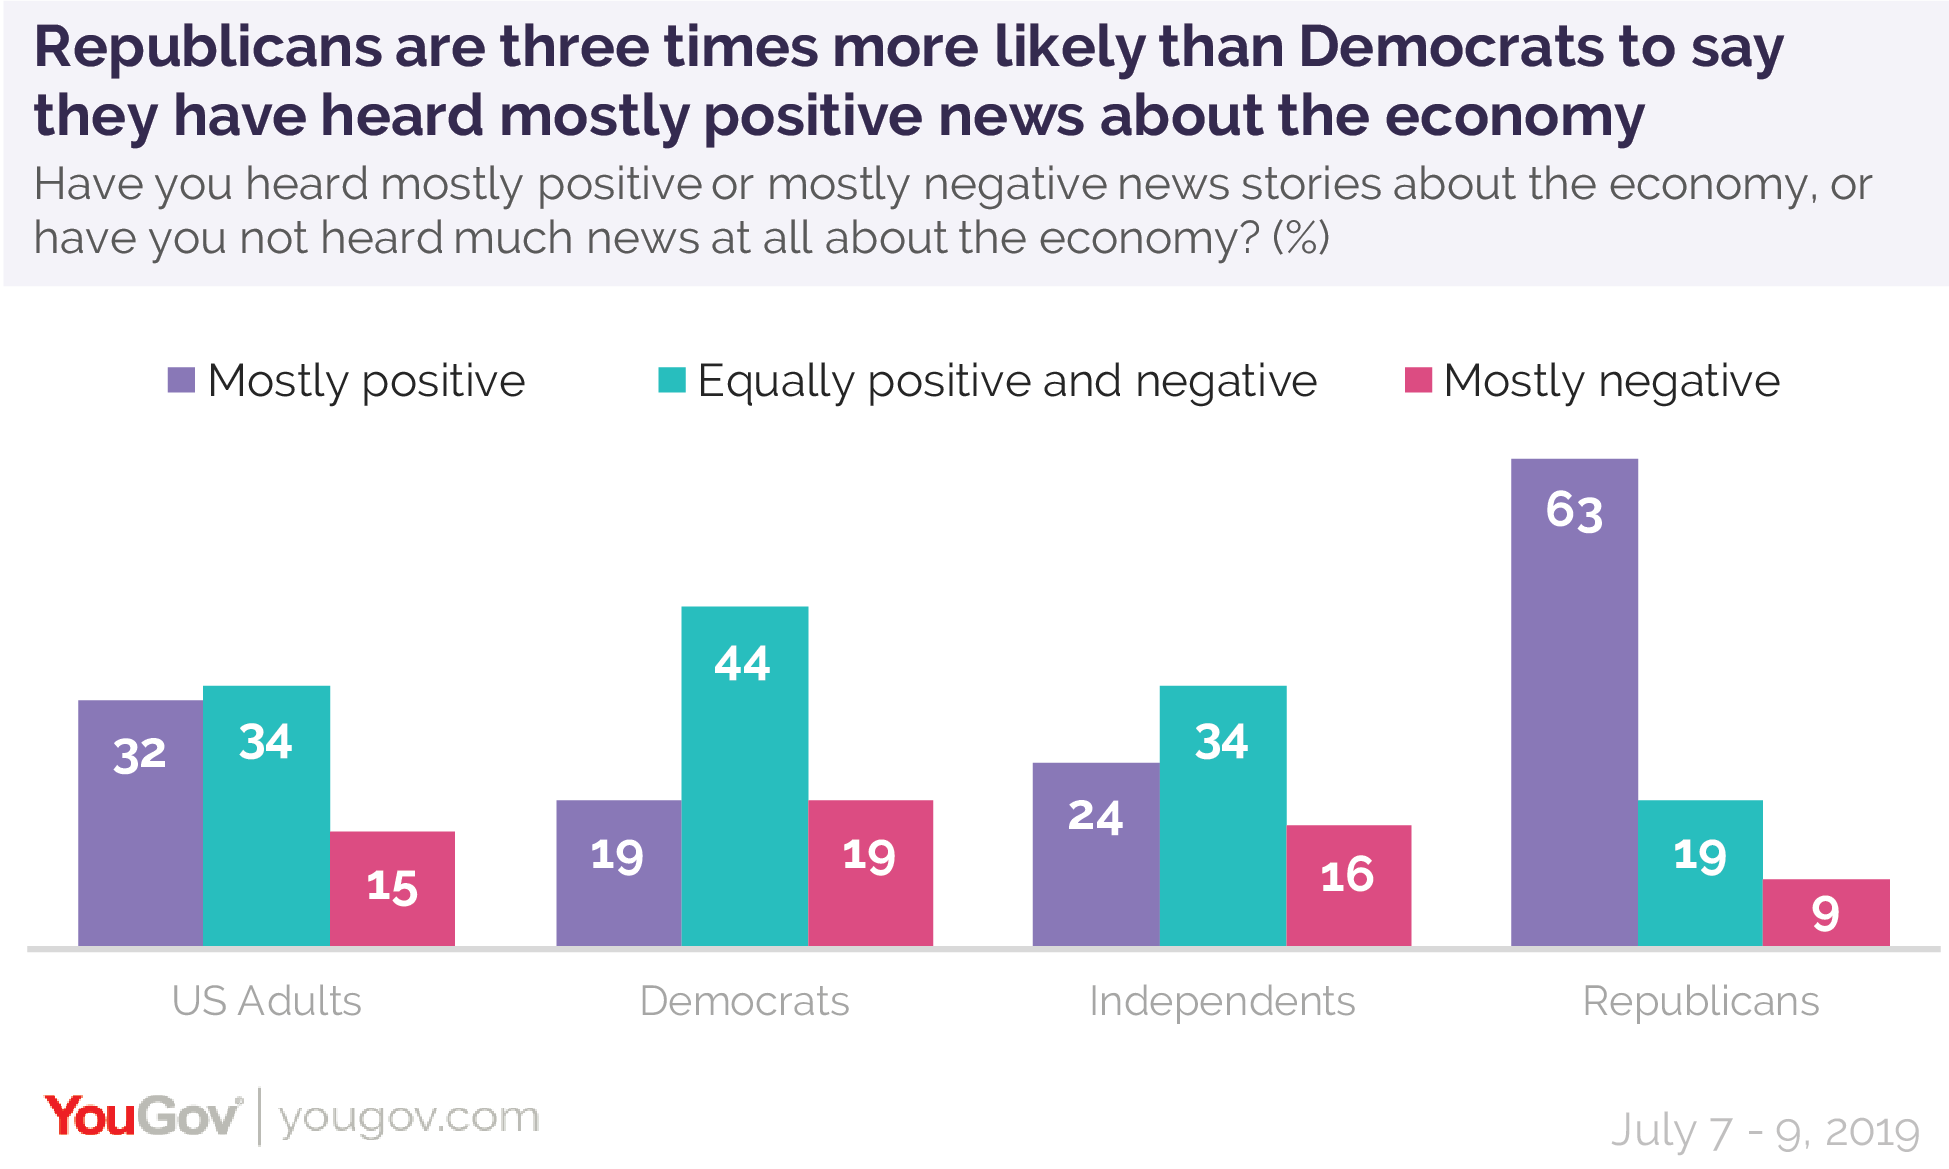 Republicans are three times more likely than Democrats to say they have heard mostly positive news about the economy